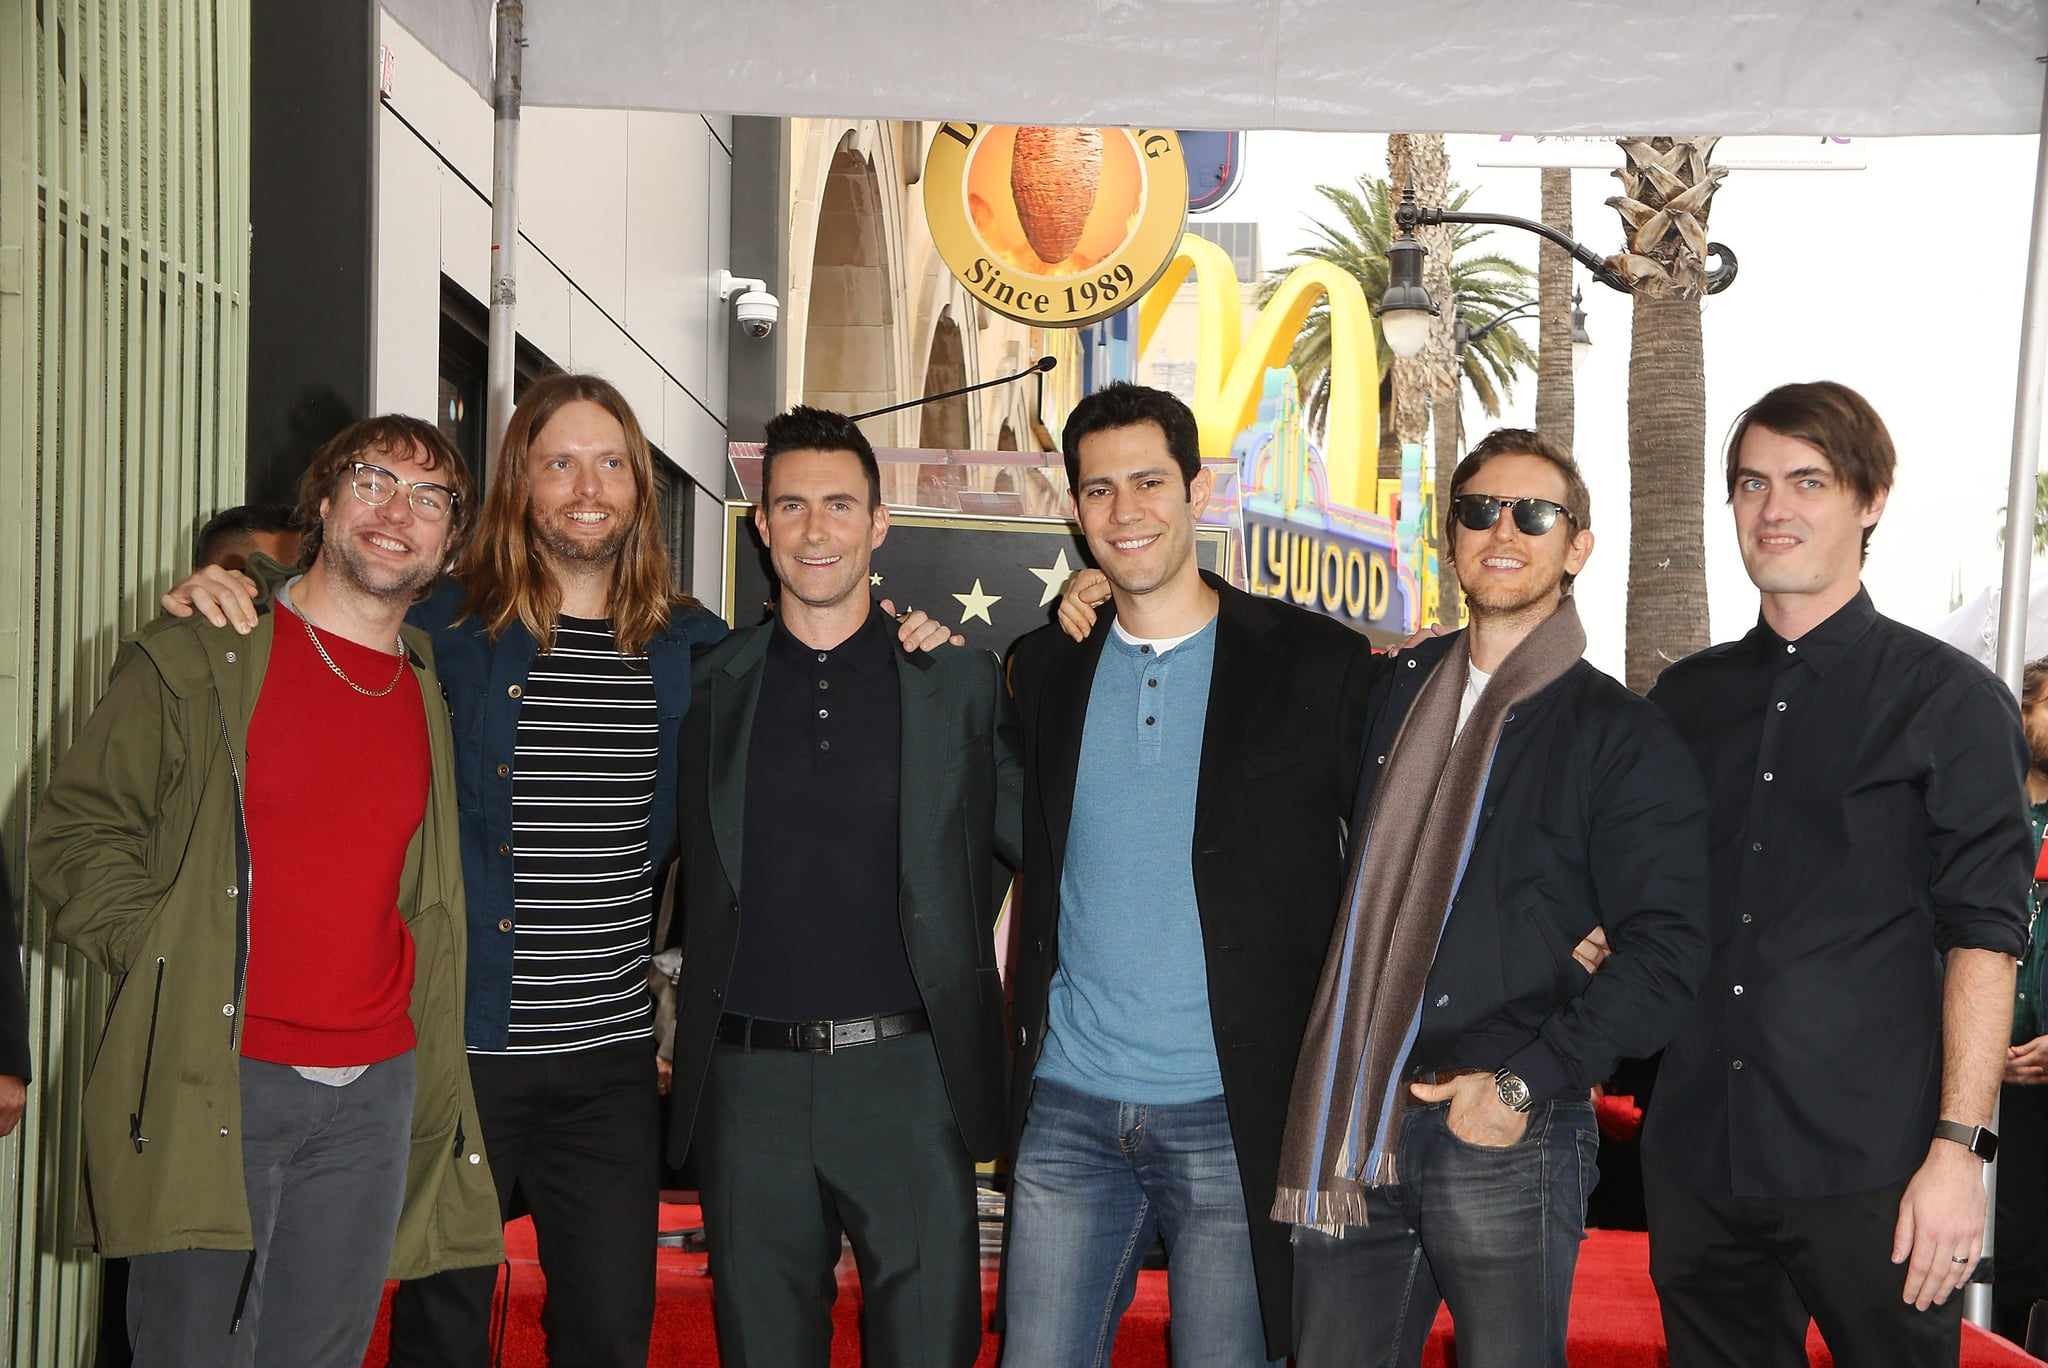 HOLLYWOOD, CA - FEBRUARY 10:  Adam Levine and Maroon 5 attend the ceremony honouring Adam Levine with a Star on The Hollywood Walk of Fame held on February 10, 2017 in Hollywood, California.  (Photo by Michael Tran/FilmMagic)